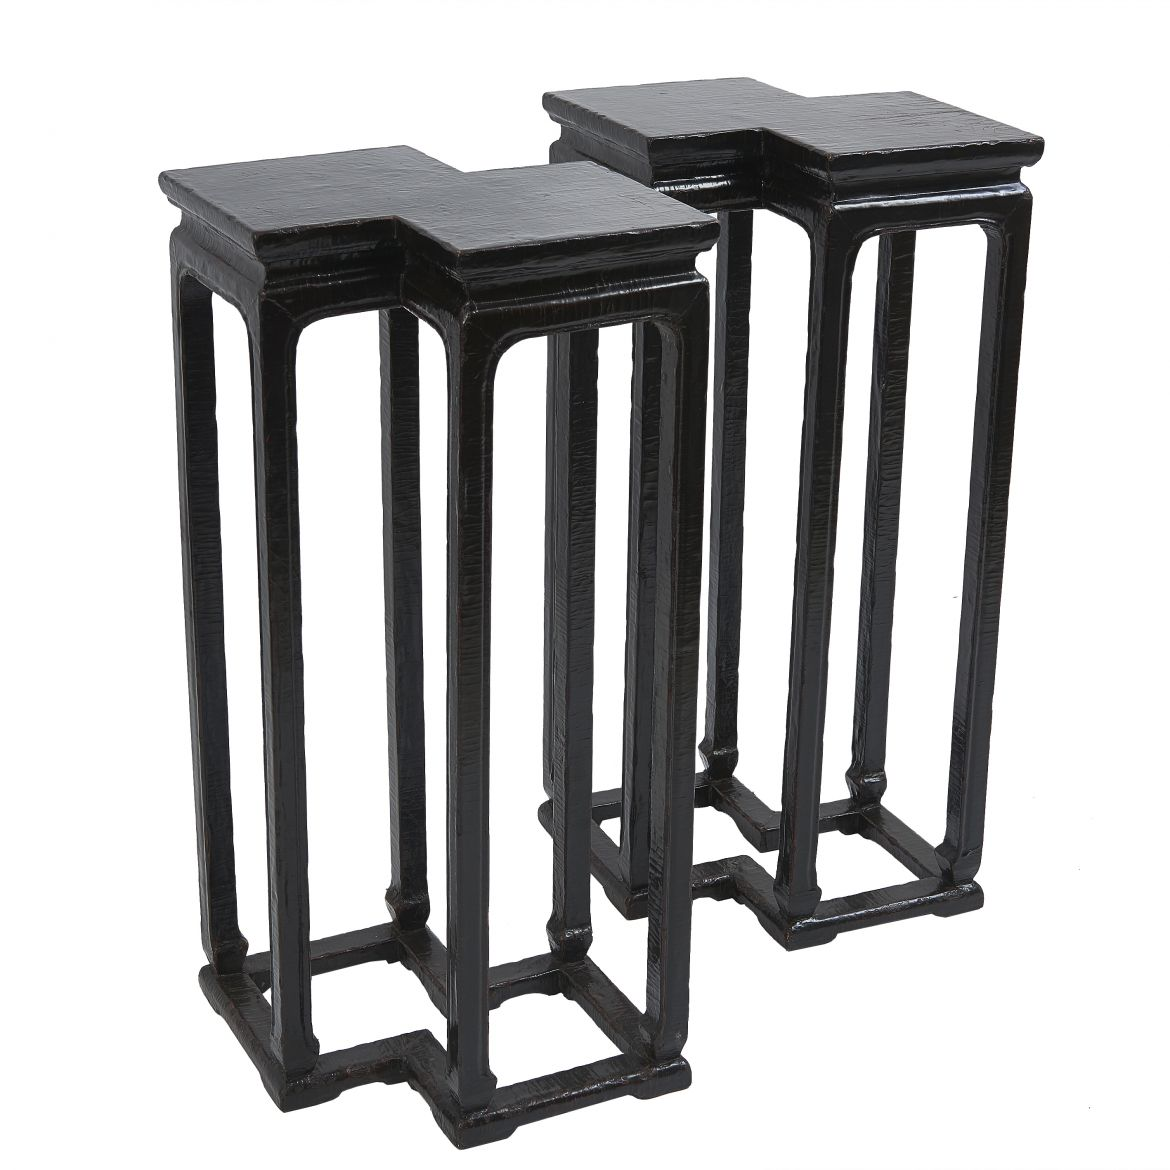 Chinese Conjoined lacquer Tables